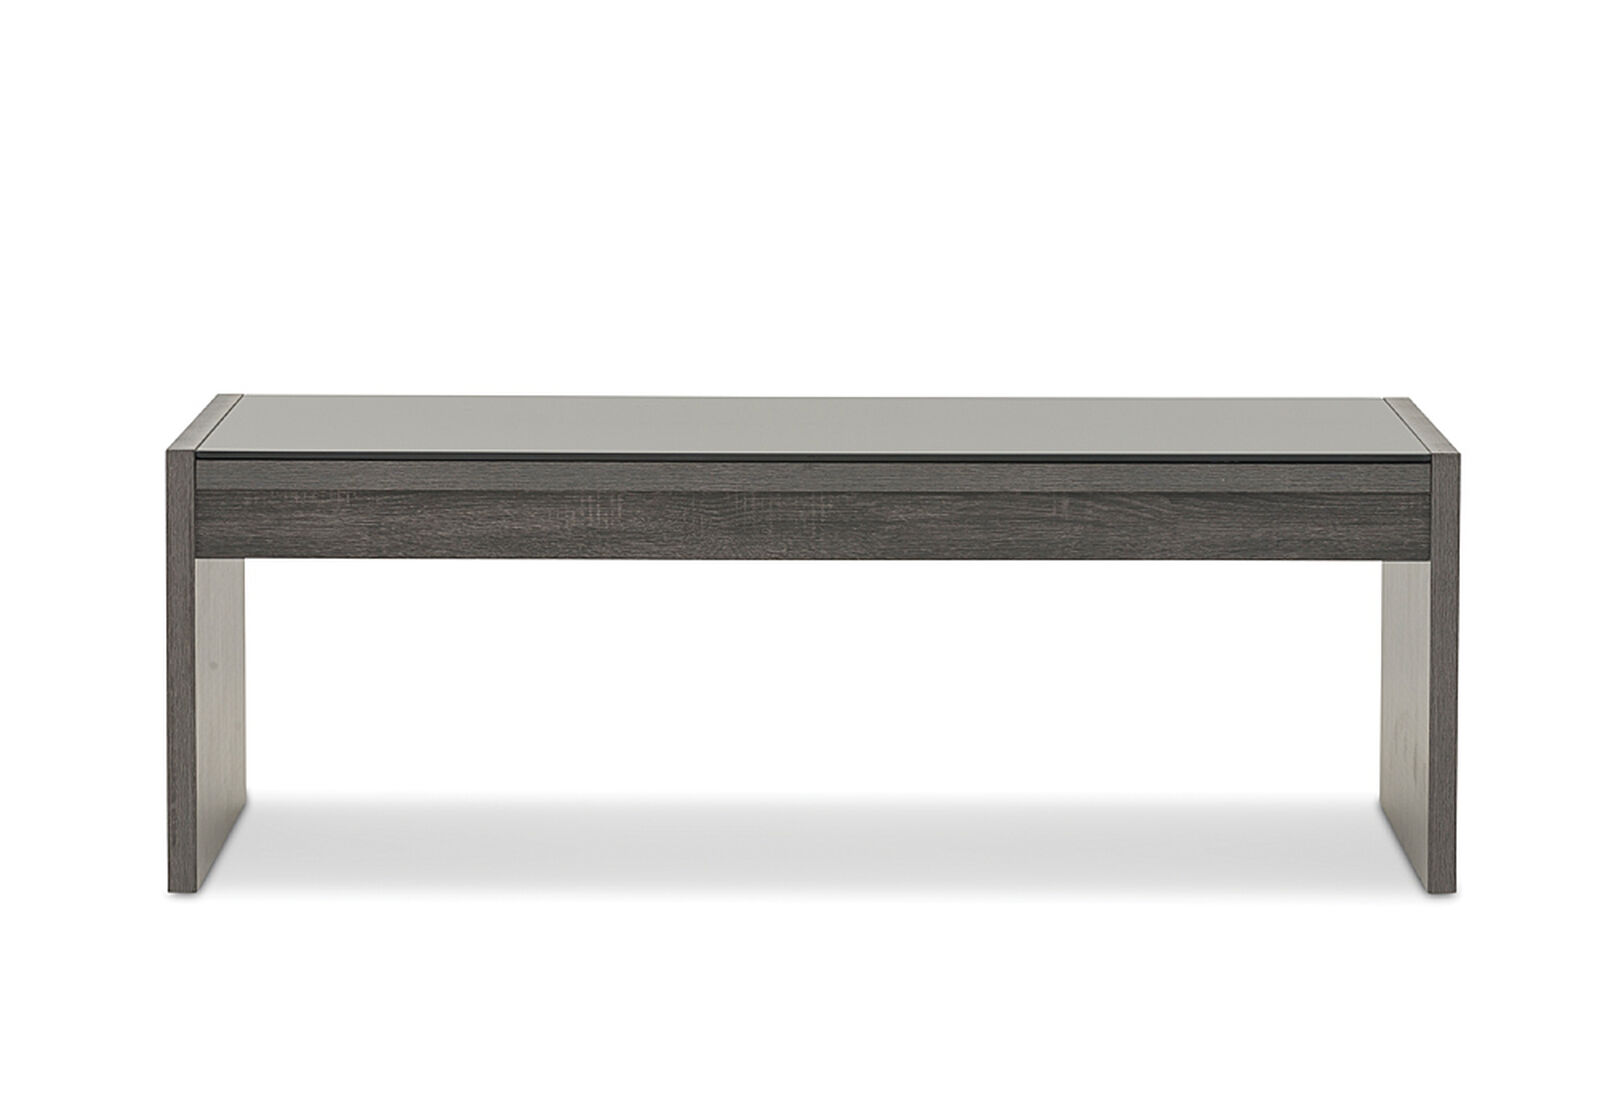 SUMMIT Coffee Table $299 was $399